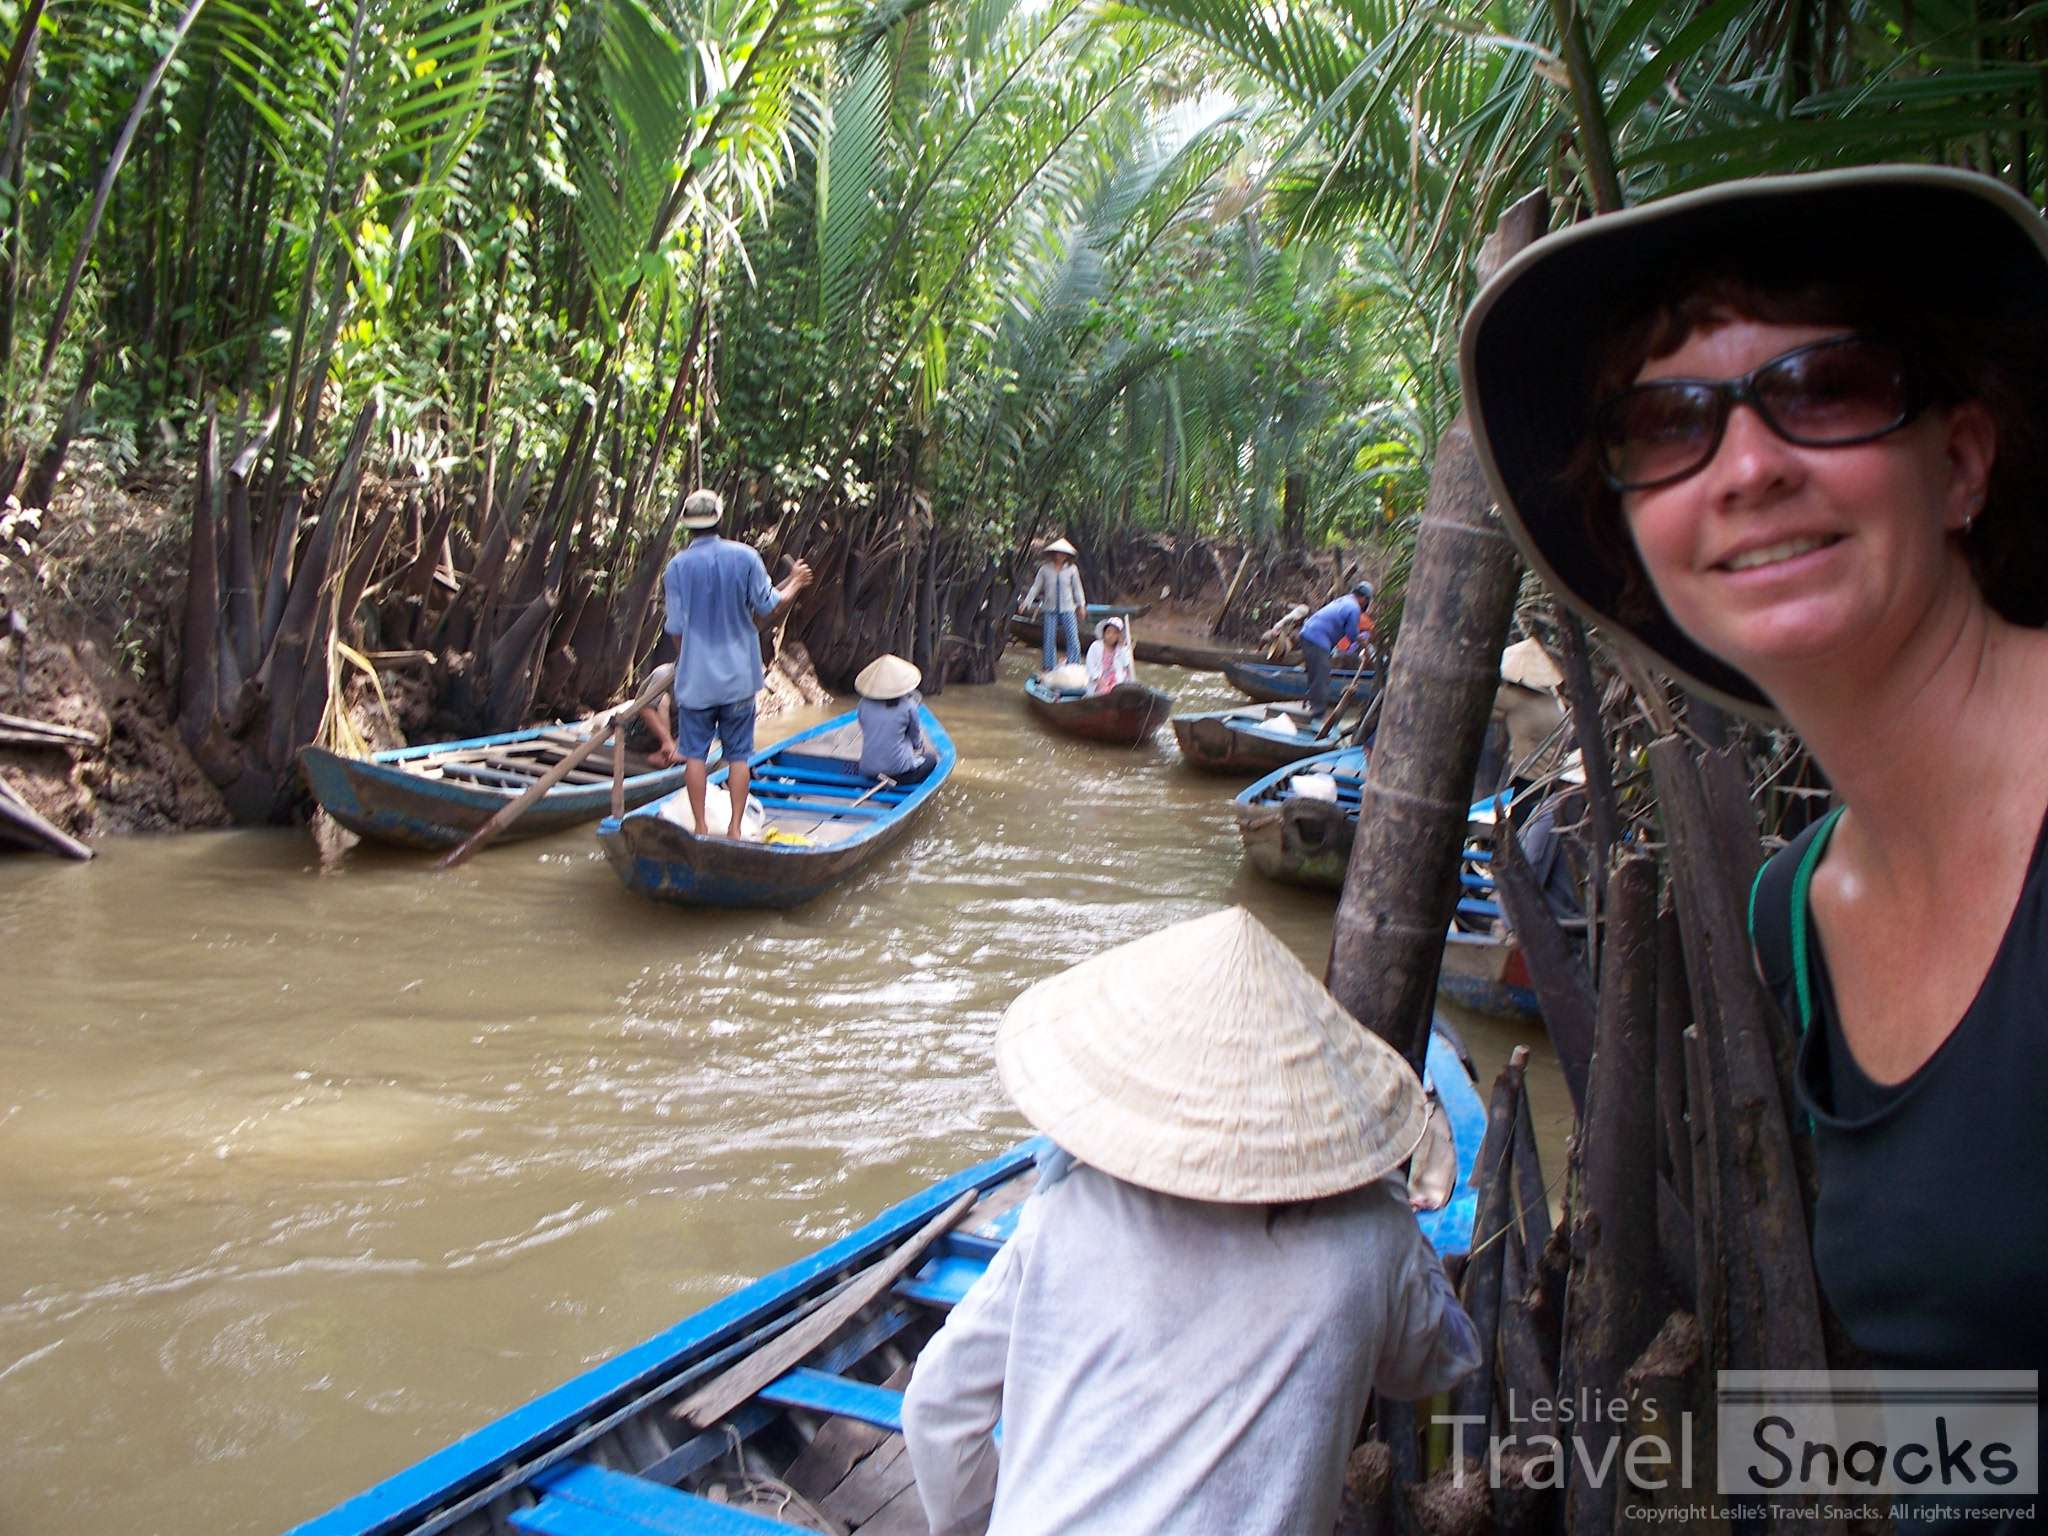 The Mekong Detla tour turned out to be a good way to spend some extra time.